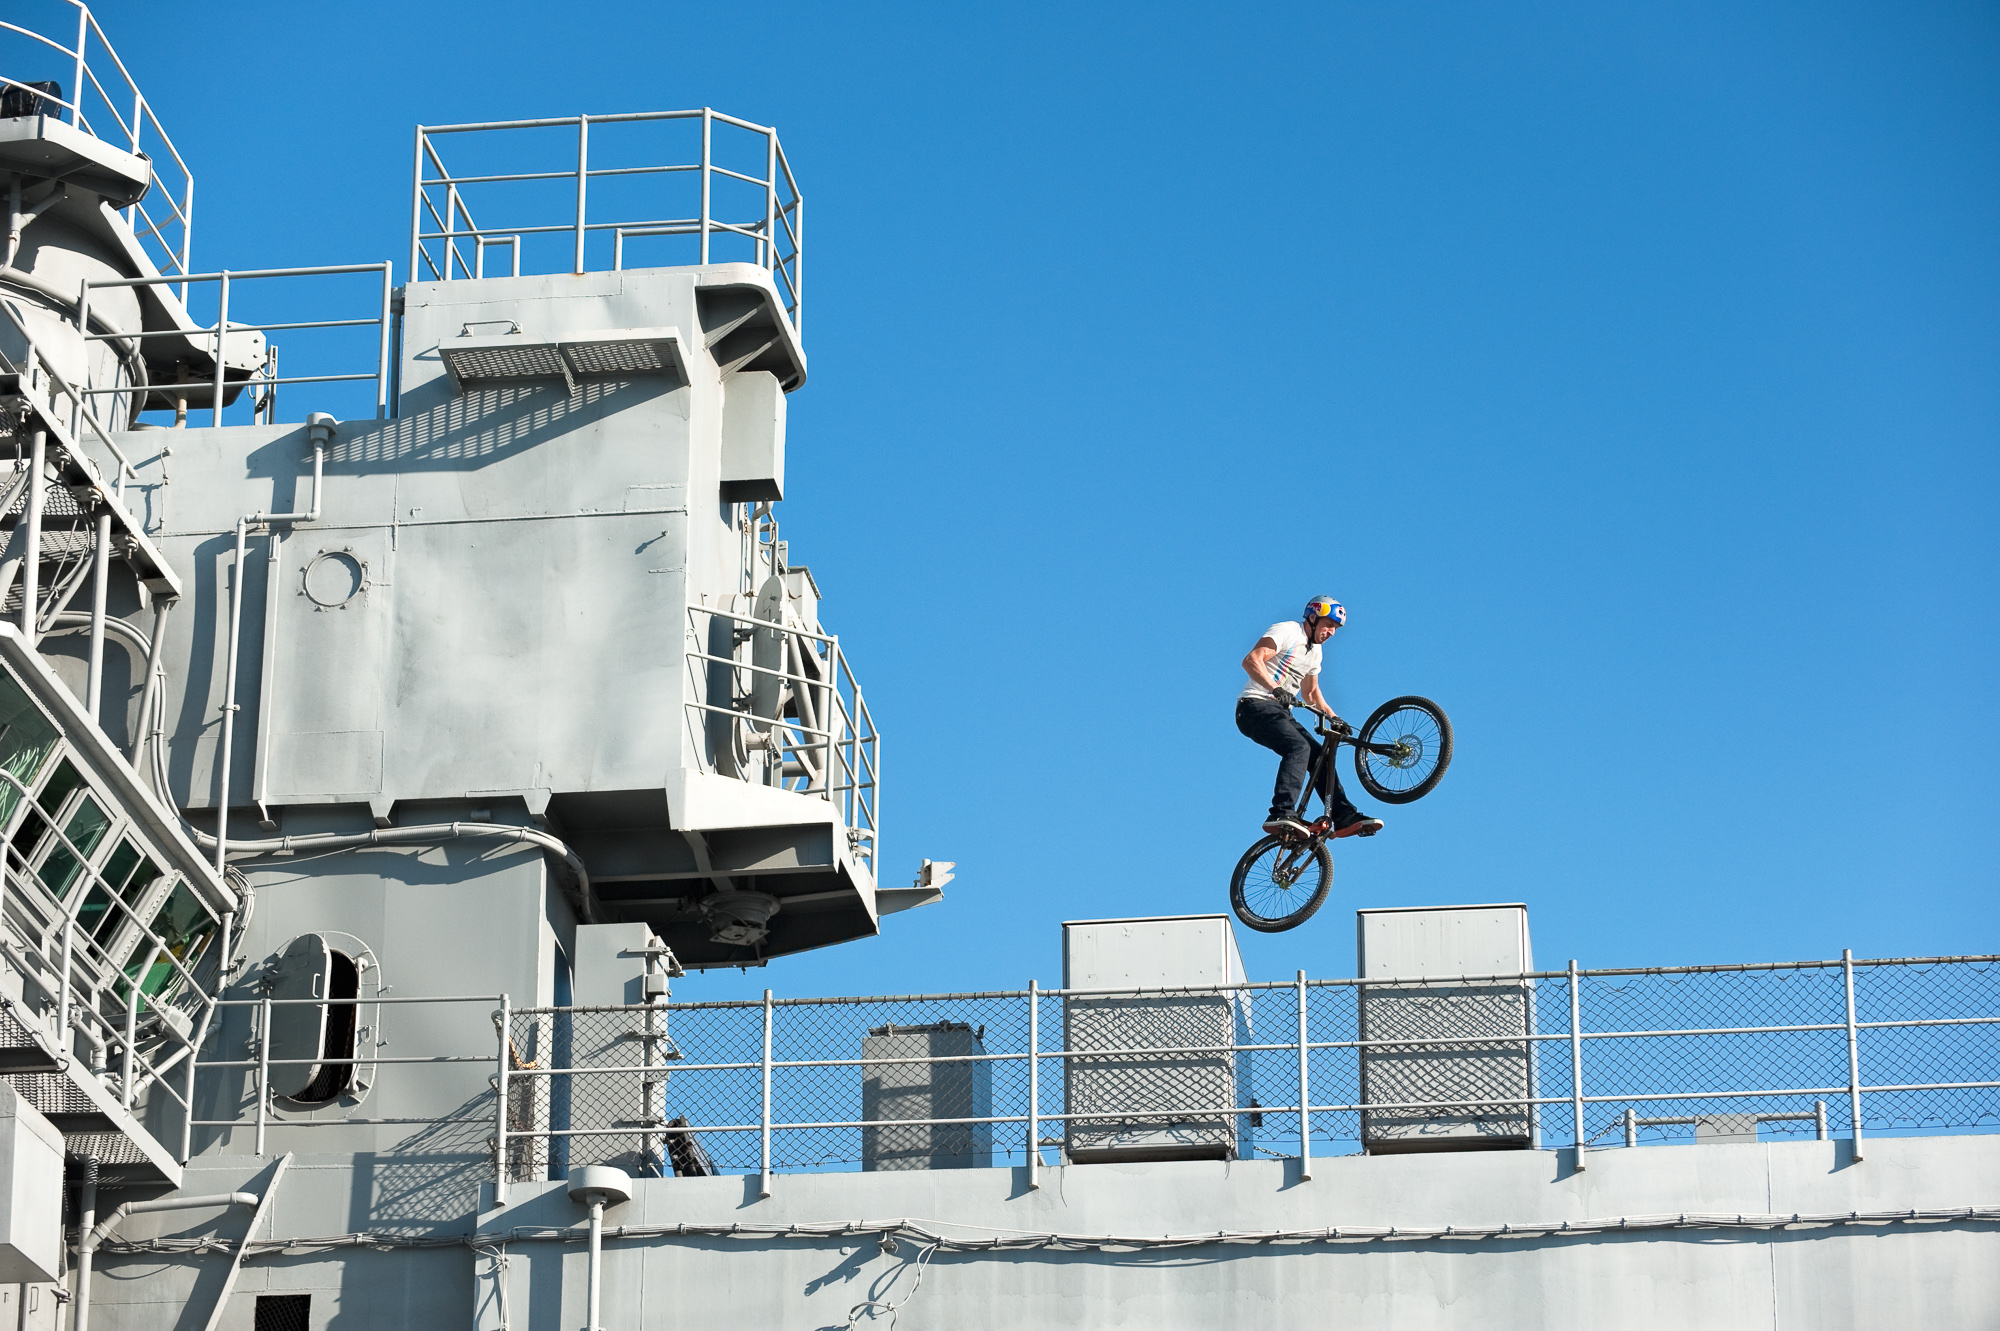 Danny MacAskill Photo Shoot - San Diego, California